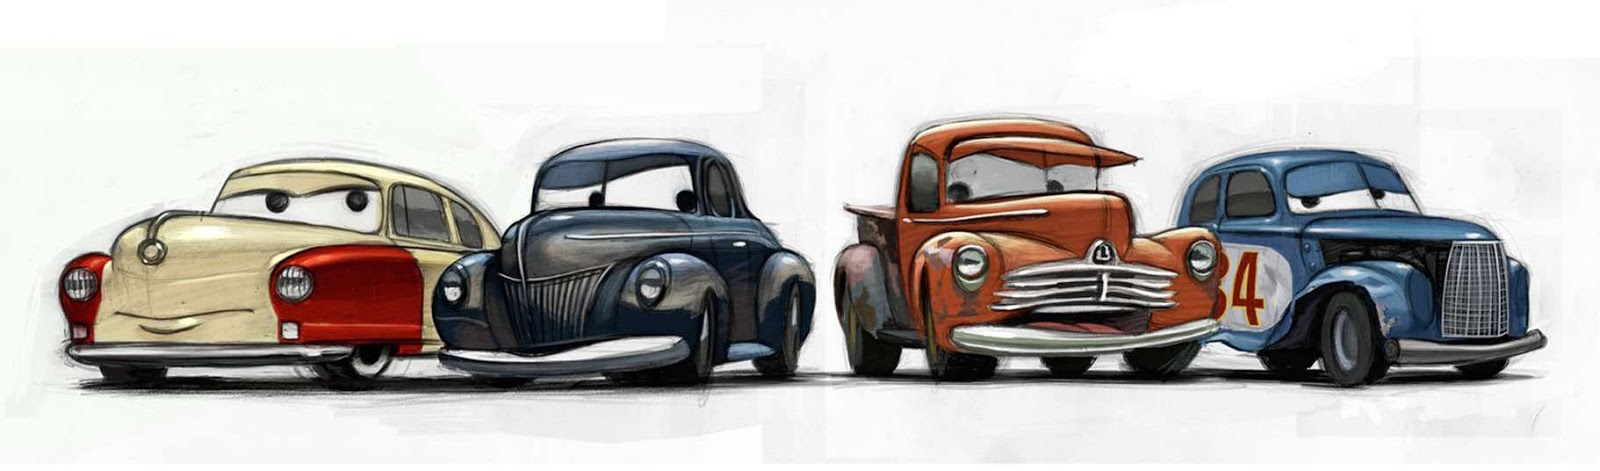 Mcqueen S Return Go Behind The Scenes Of Cars 3 Read Our